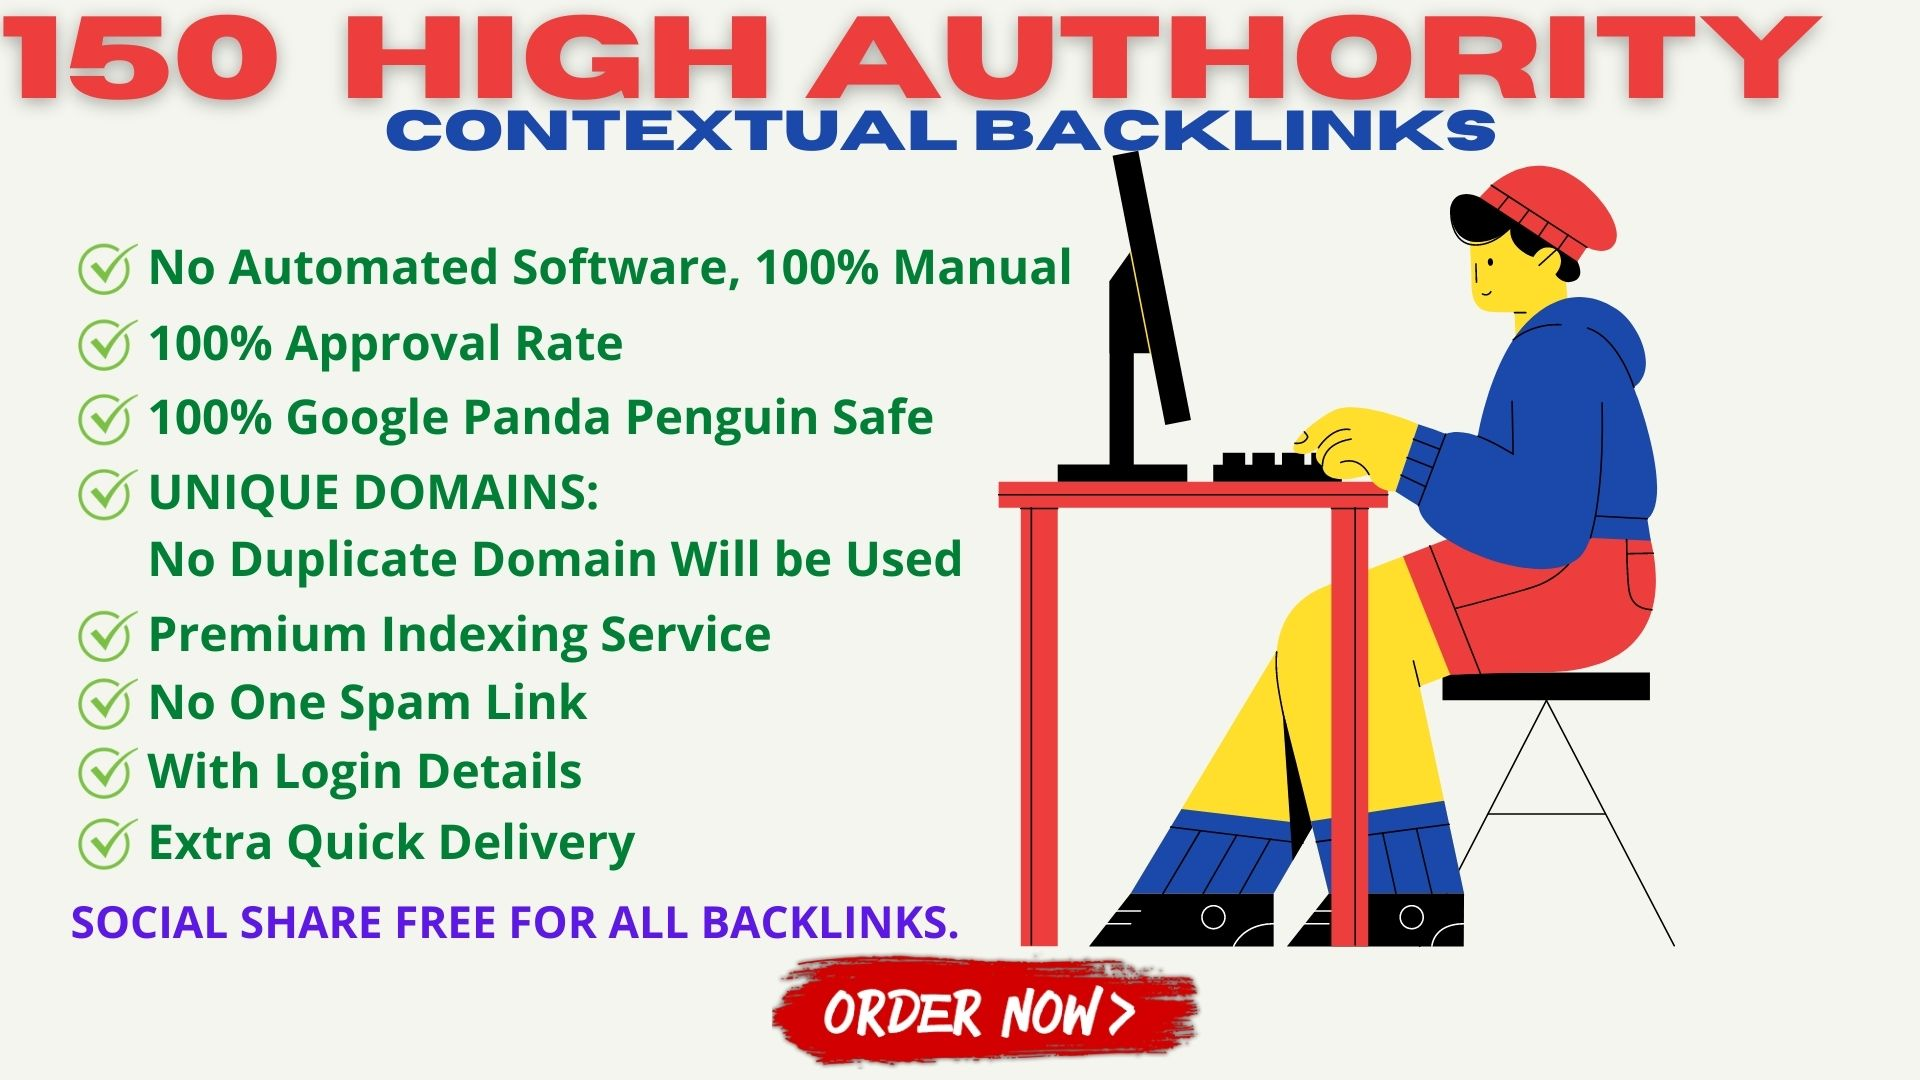 I Will Boost Your Website Rankings With 150 Contextual High Authority Backlinks